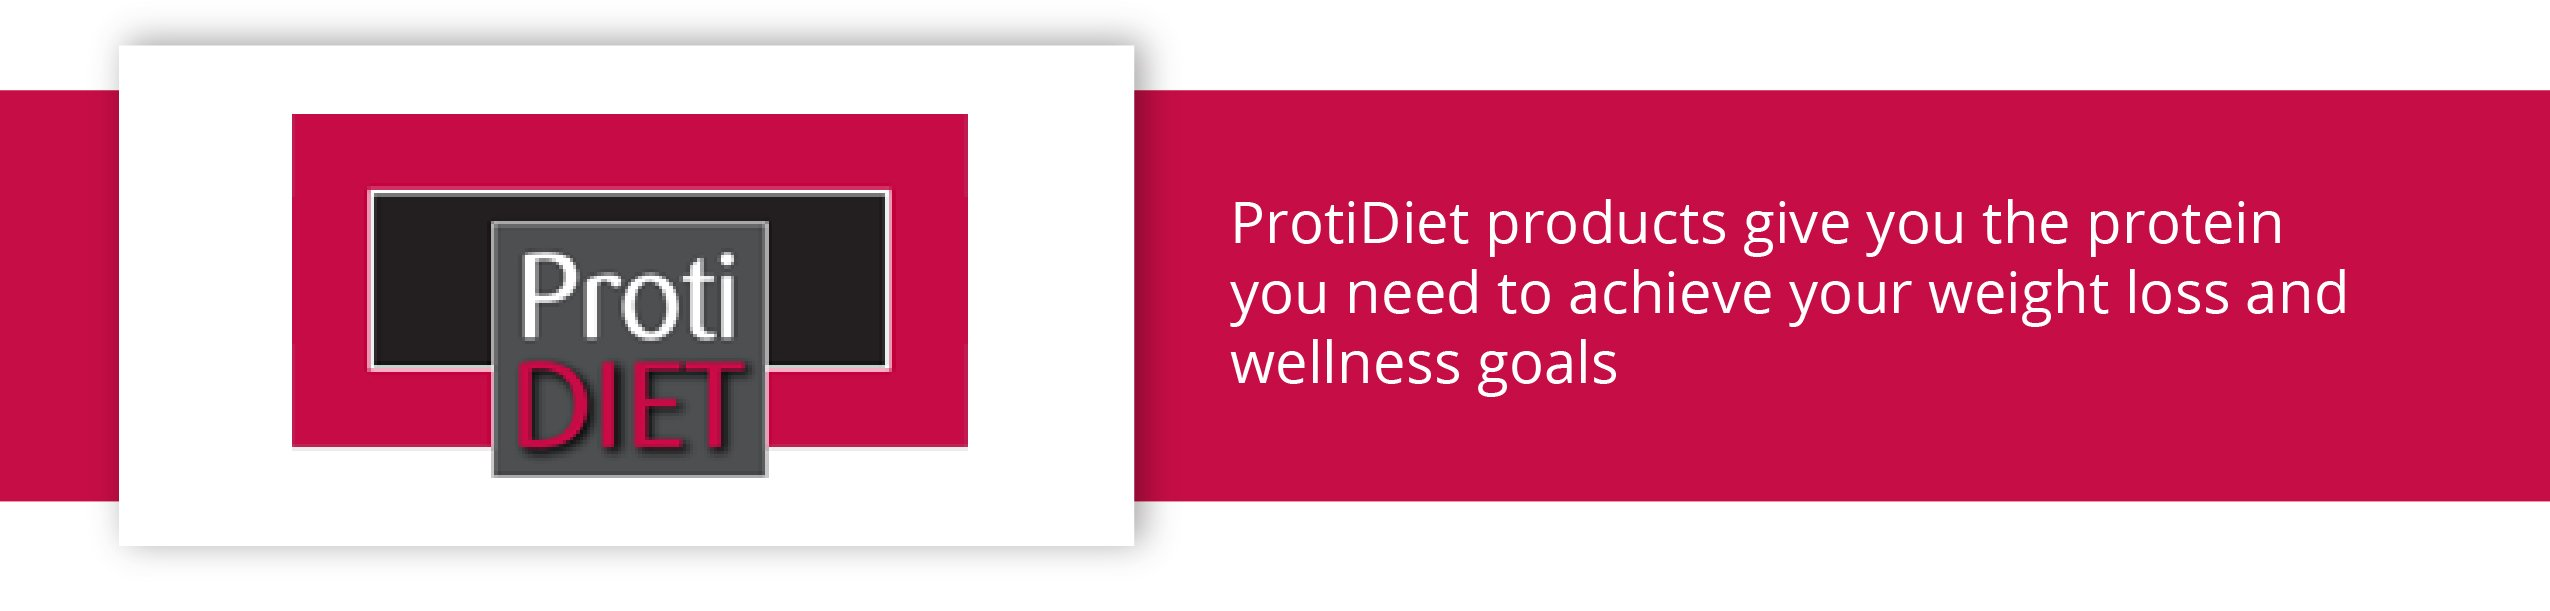 ProtiDiet Protein Bars